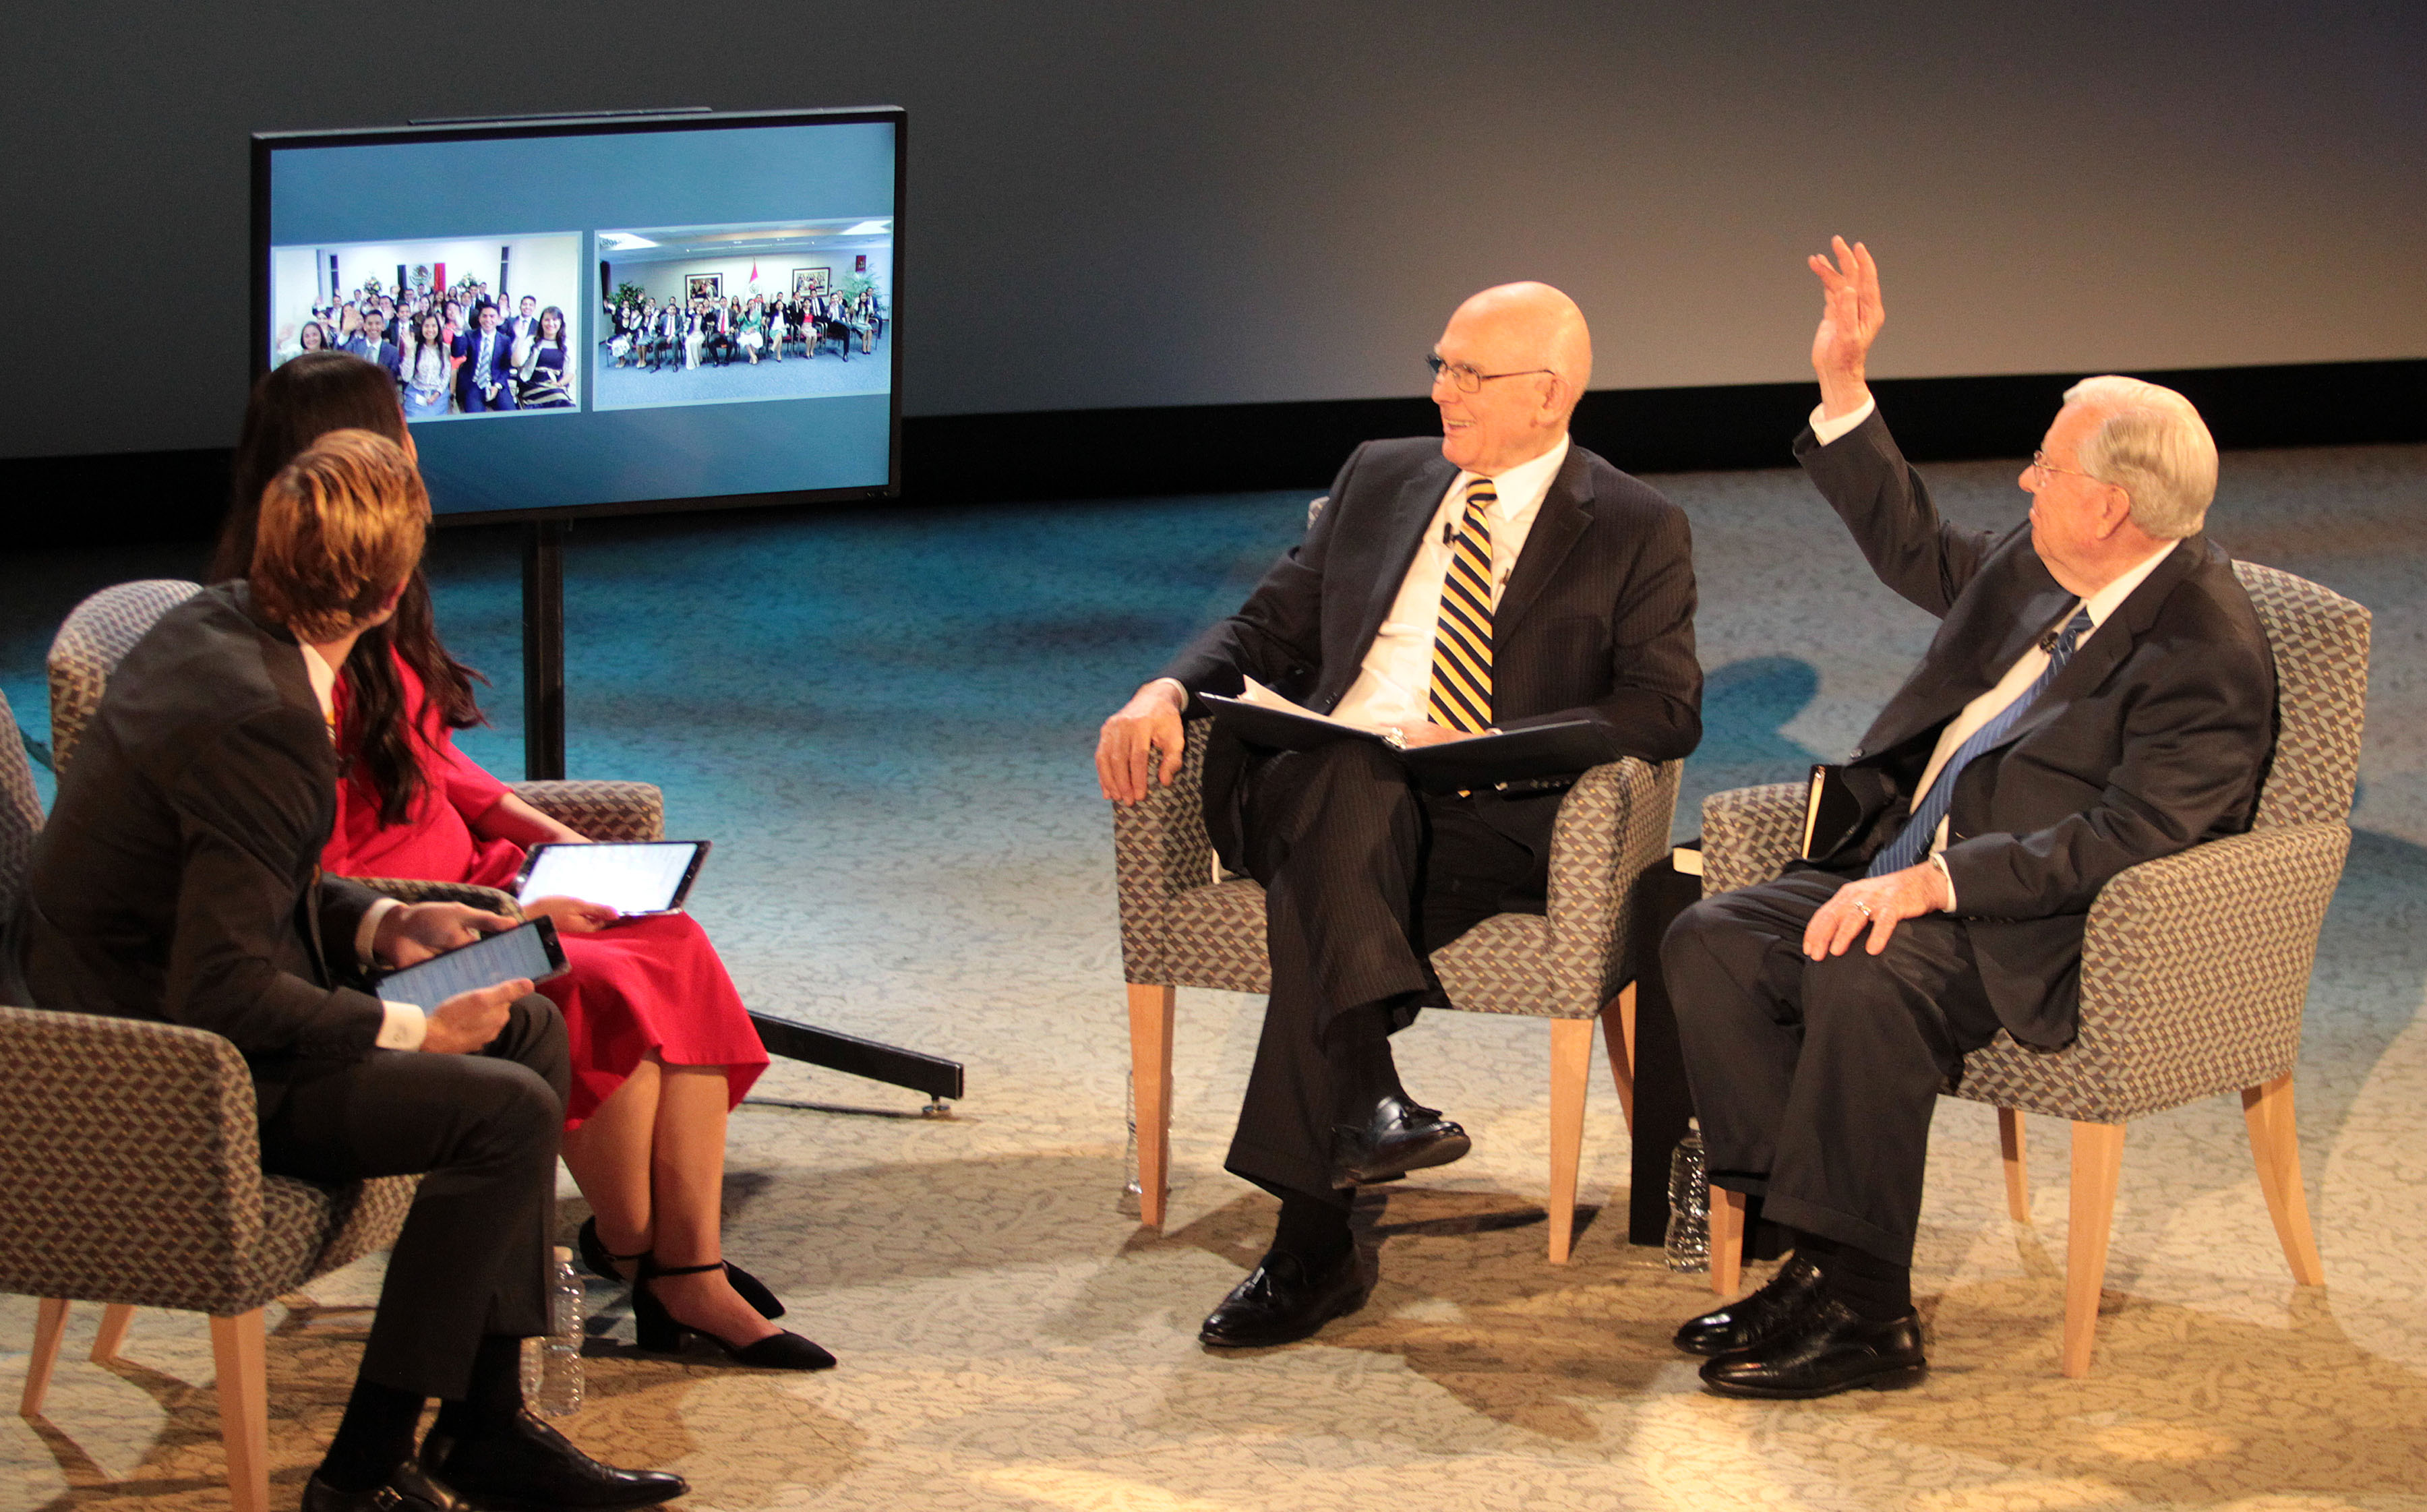 President Dallin H. Oaks and President M. Russell Ballard of the Quorum of the Twelve Apostles answer questions from young single adults during a Face to Face event on Nov. 20, 2017, in Logan, Utah.